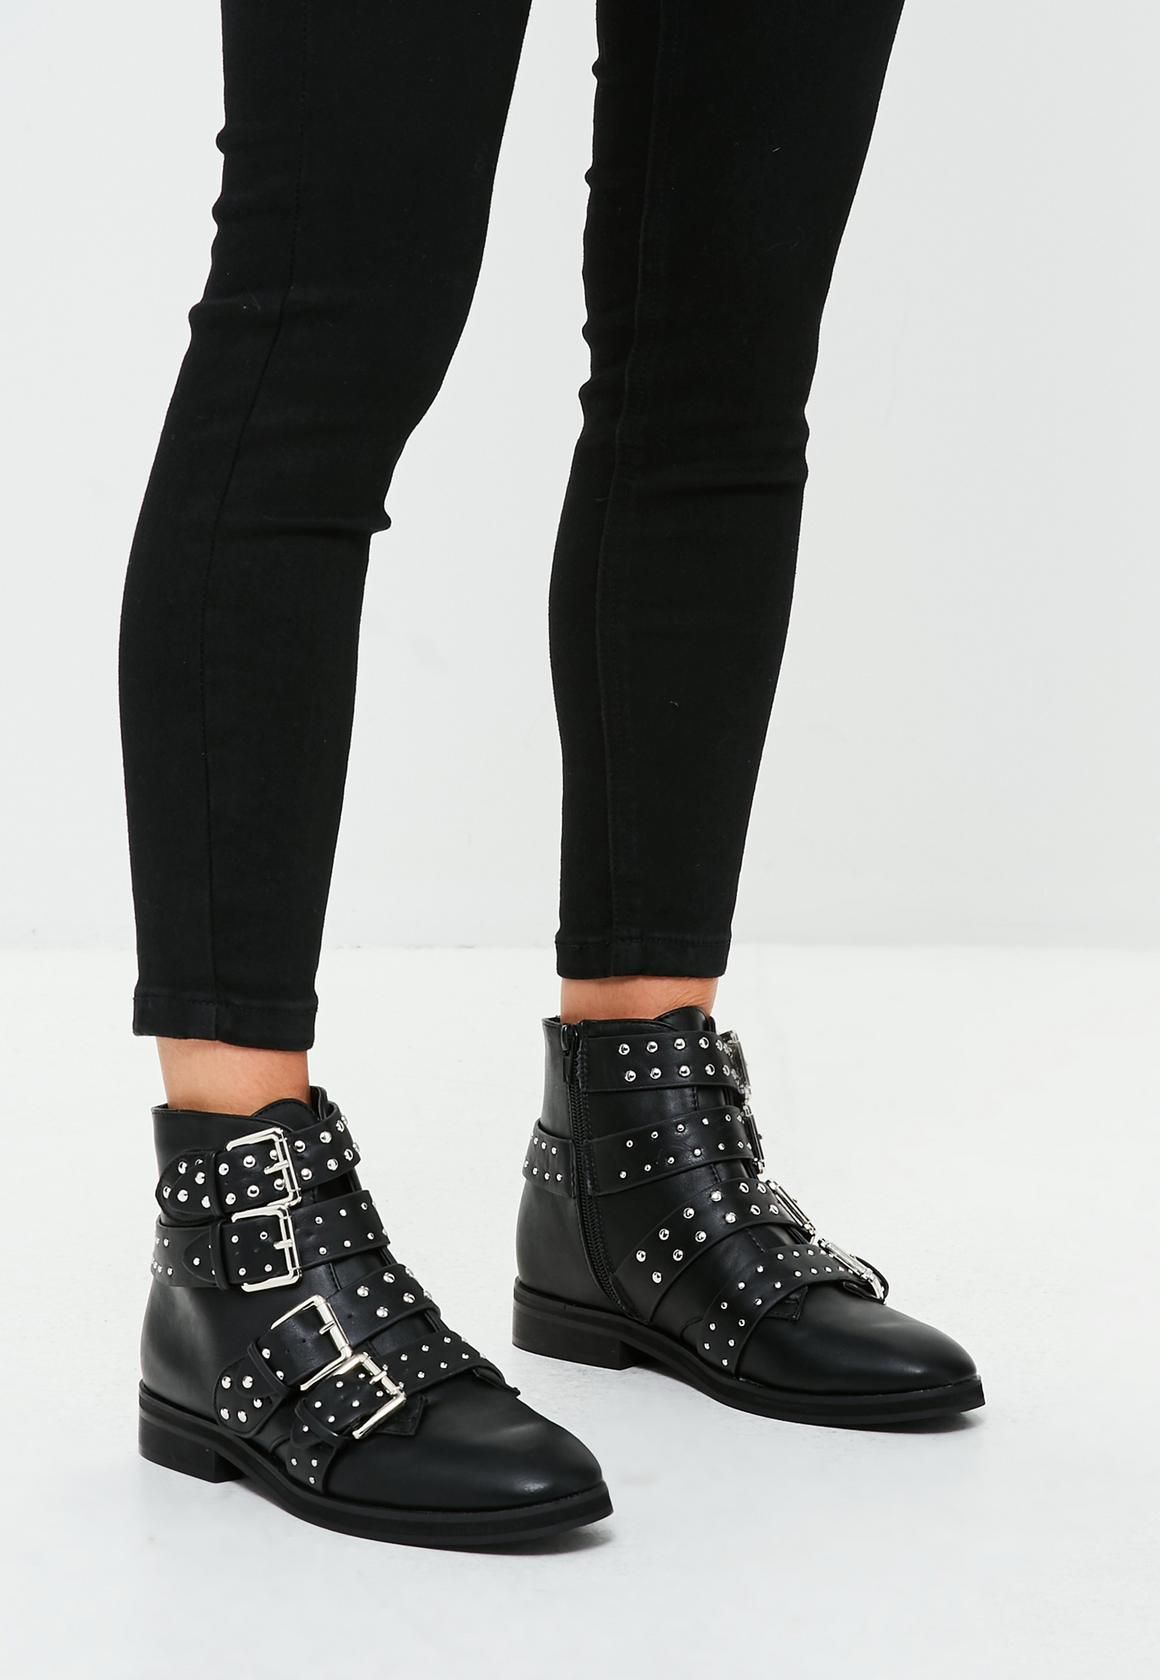 Black Ankle Boot Featuring Silver Stud Details Four Front Buckles